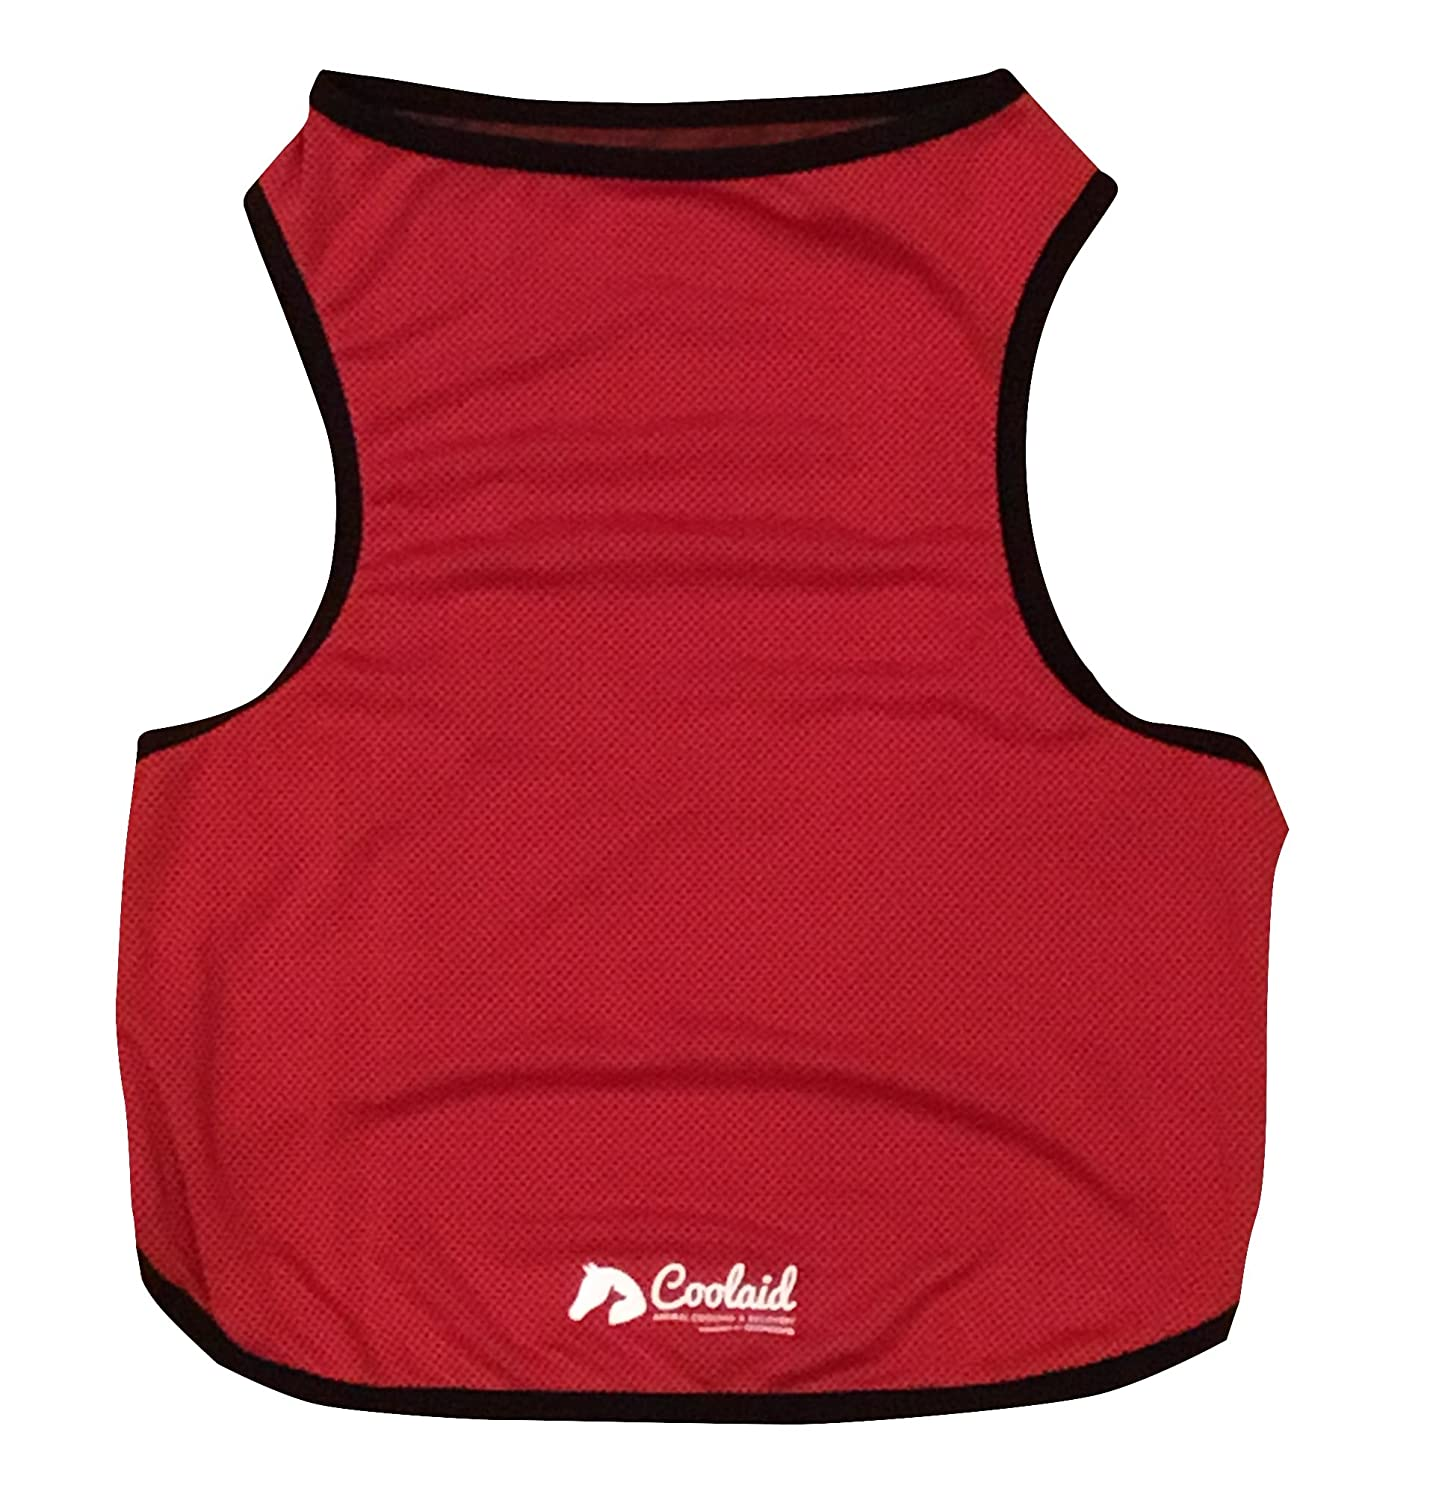 Red Coolaid Dog Cooling Vests Available in Small, Medium, Large, XXL